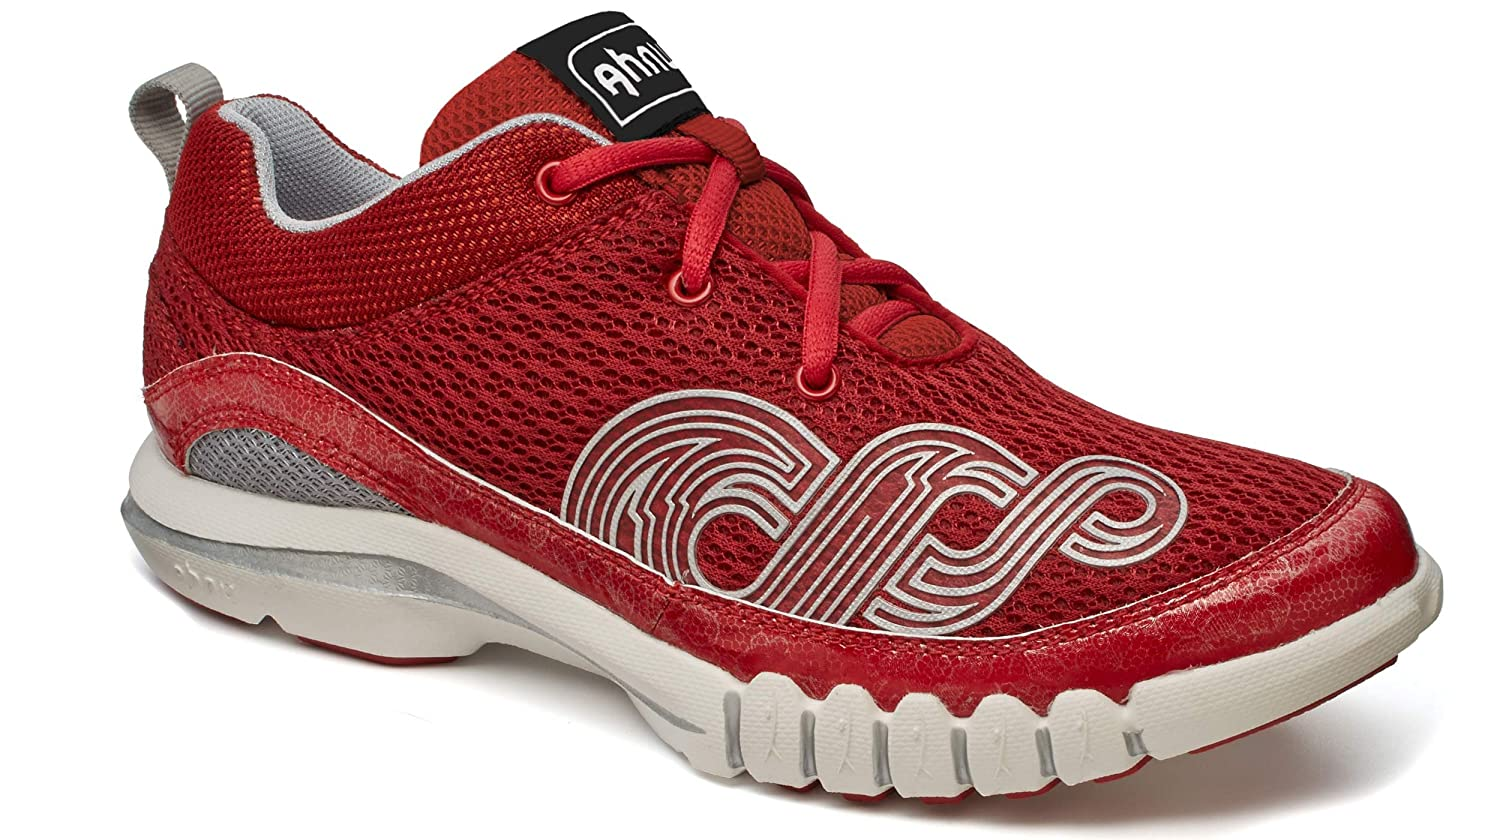 Ahnu Women's Yoga Flex B00RLA8QF8 9 B(M) US|Pepper Red